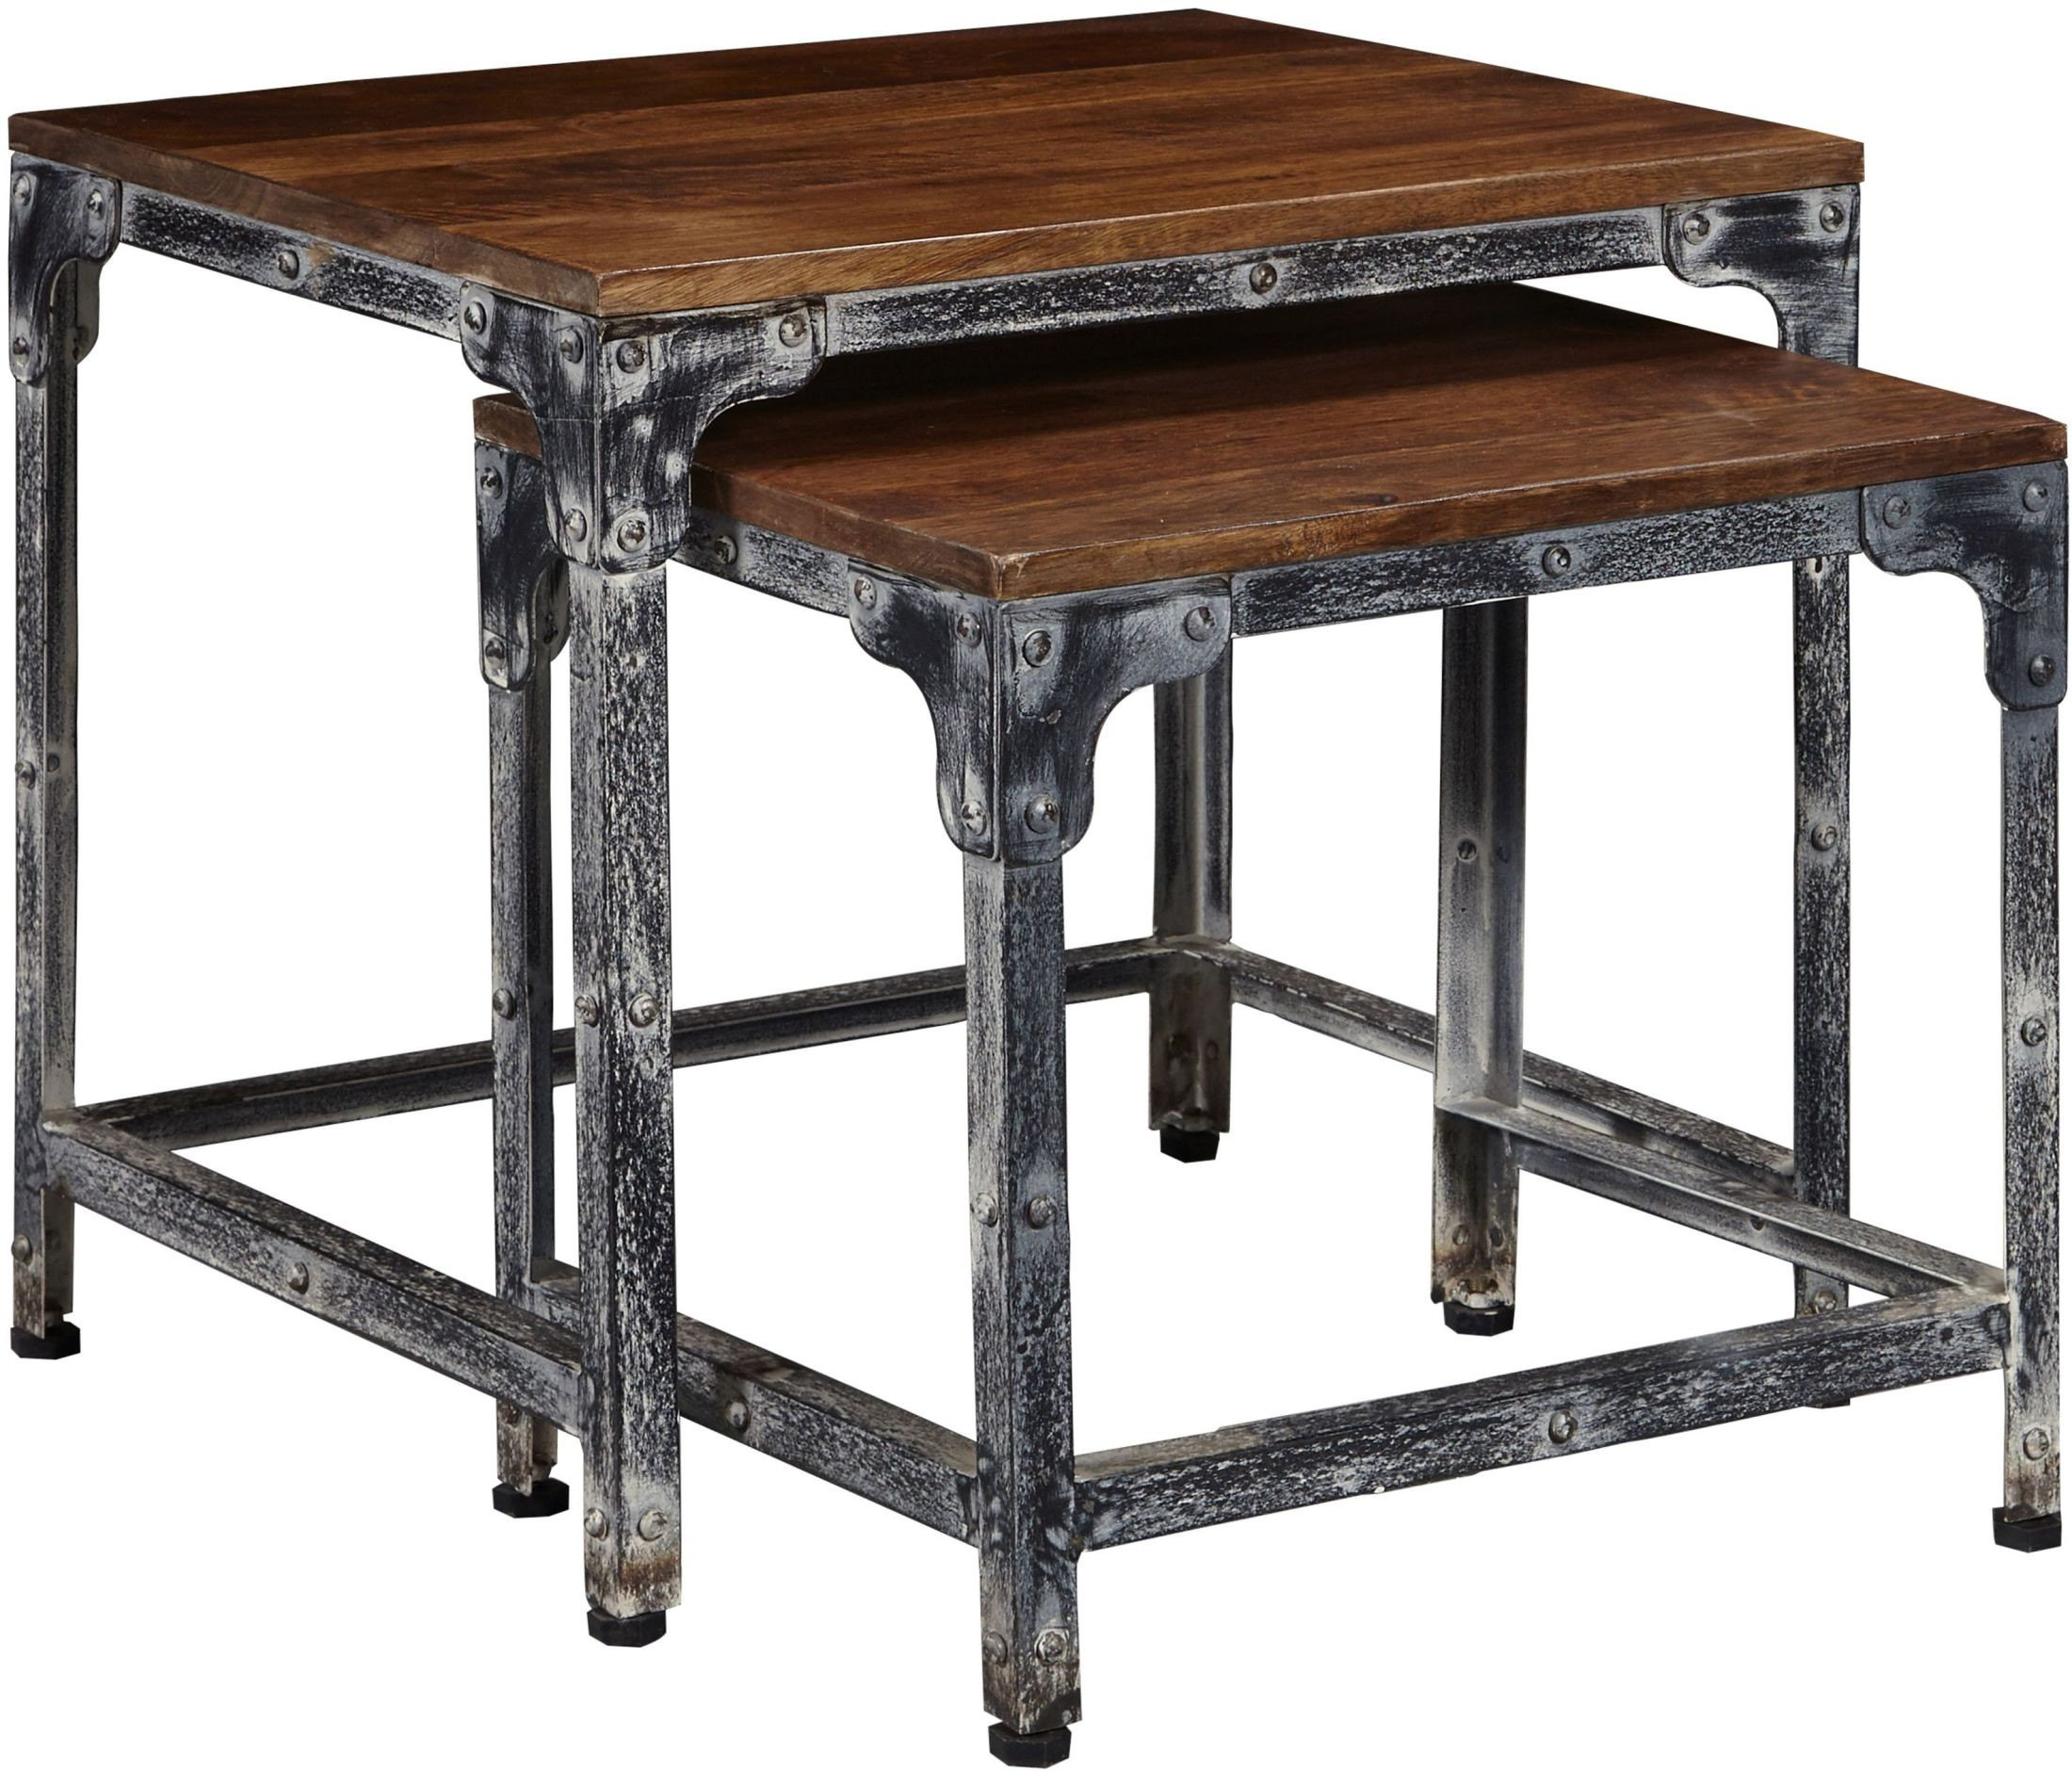 Distressed Wood And Metal Nesting Tables From Pulaski Coleman Furniture